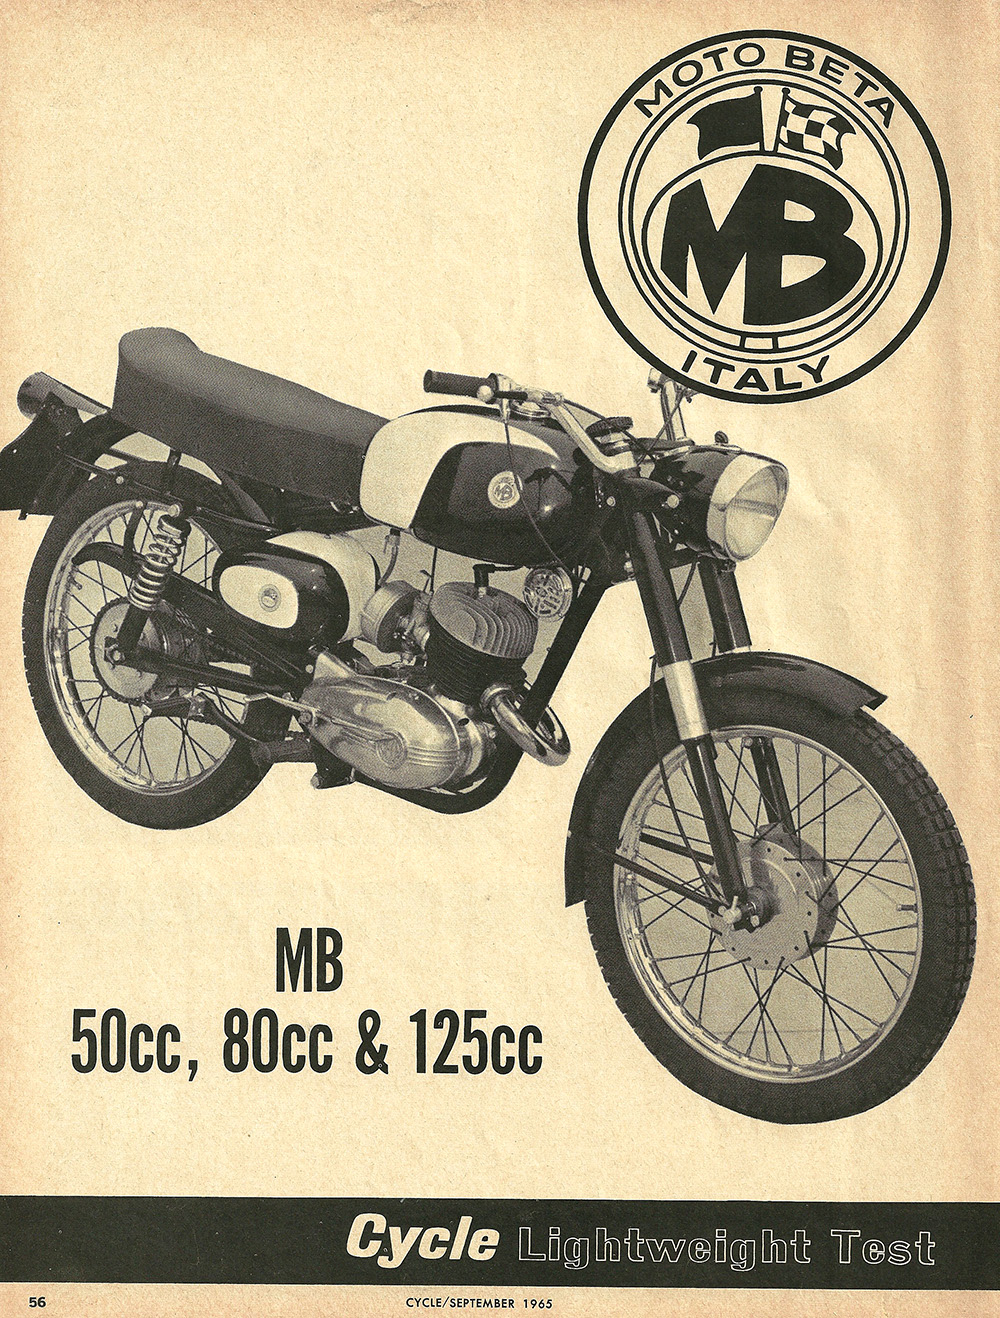 1966 Moto Beta 50cc 80cc 125cc road test 1.JPG